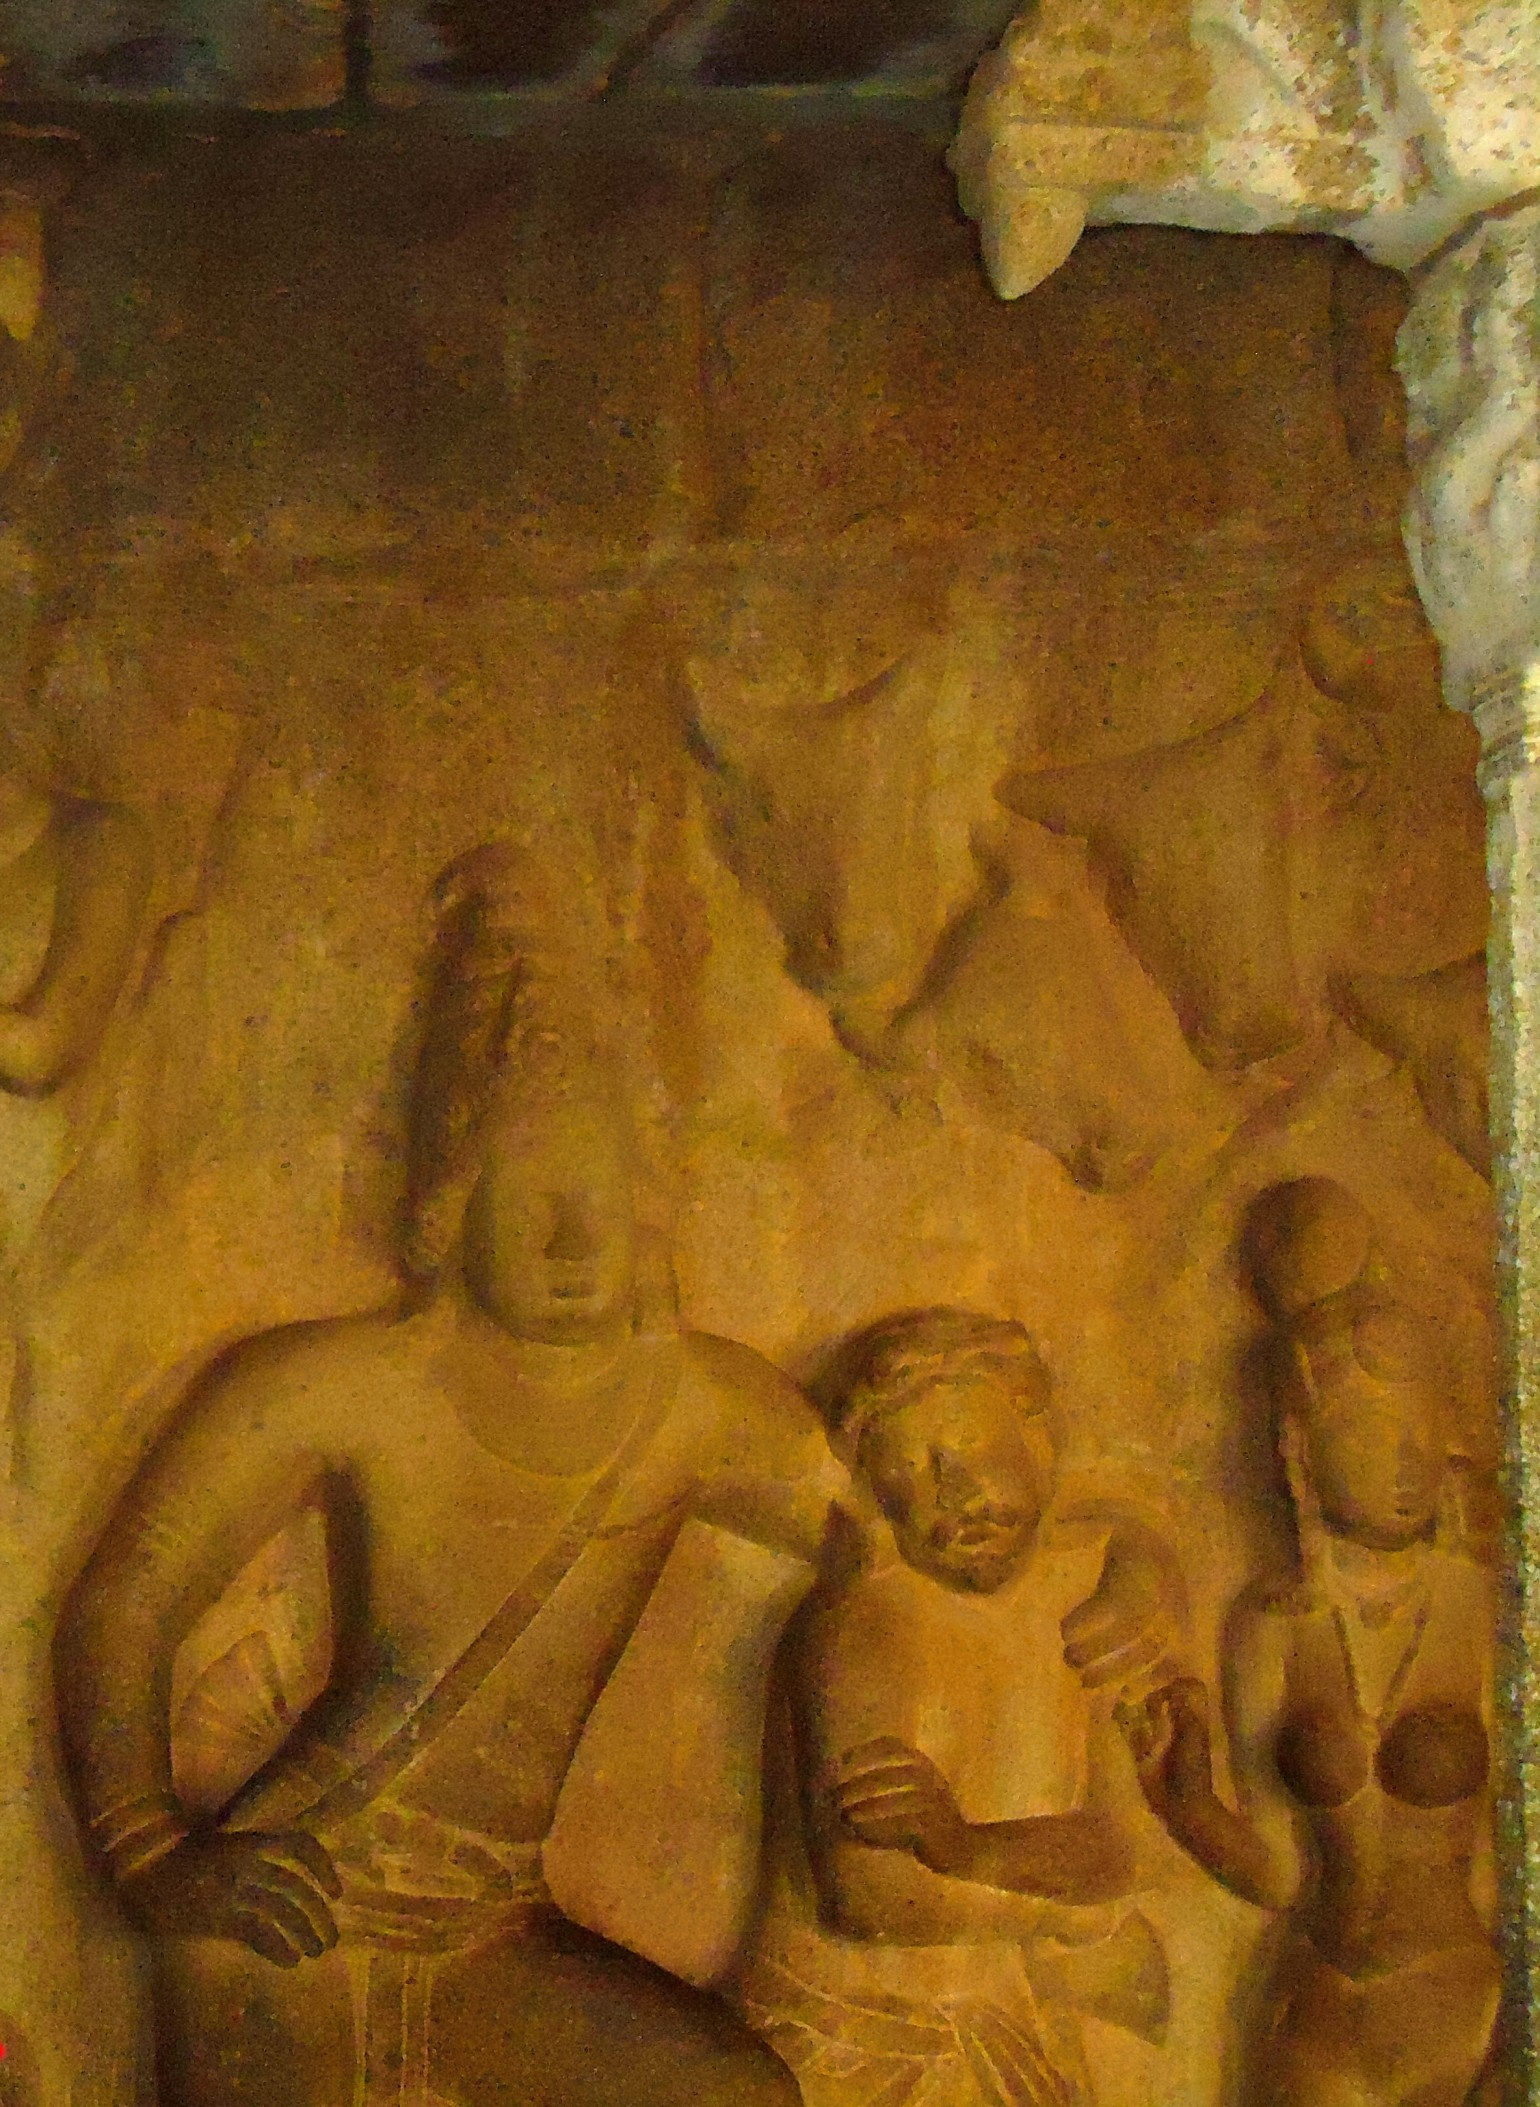 A Rich Cultural Heritage - A picture of Cave Sculptures of Lord Krishna and his friend Kuchela